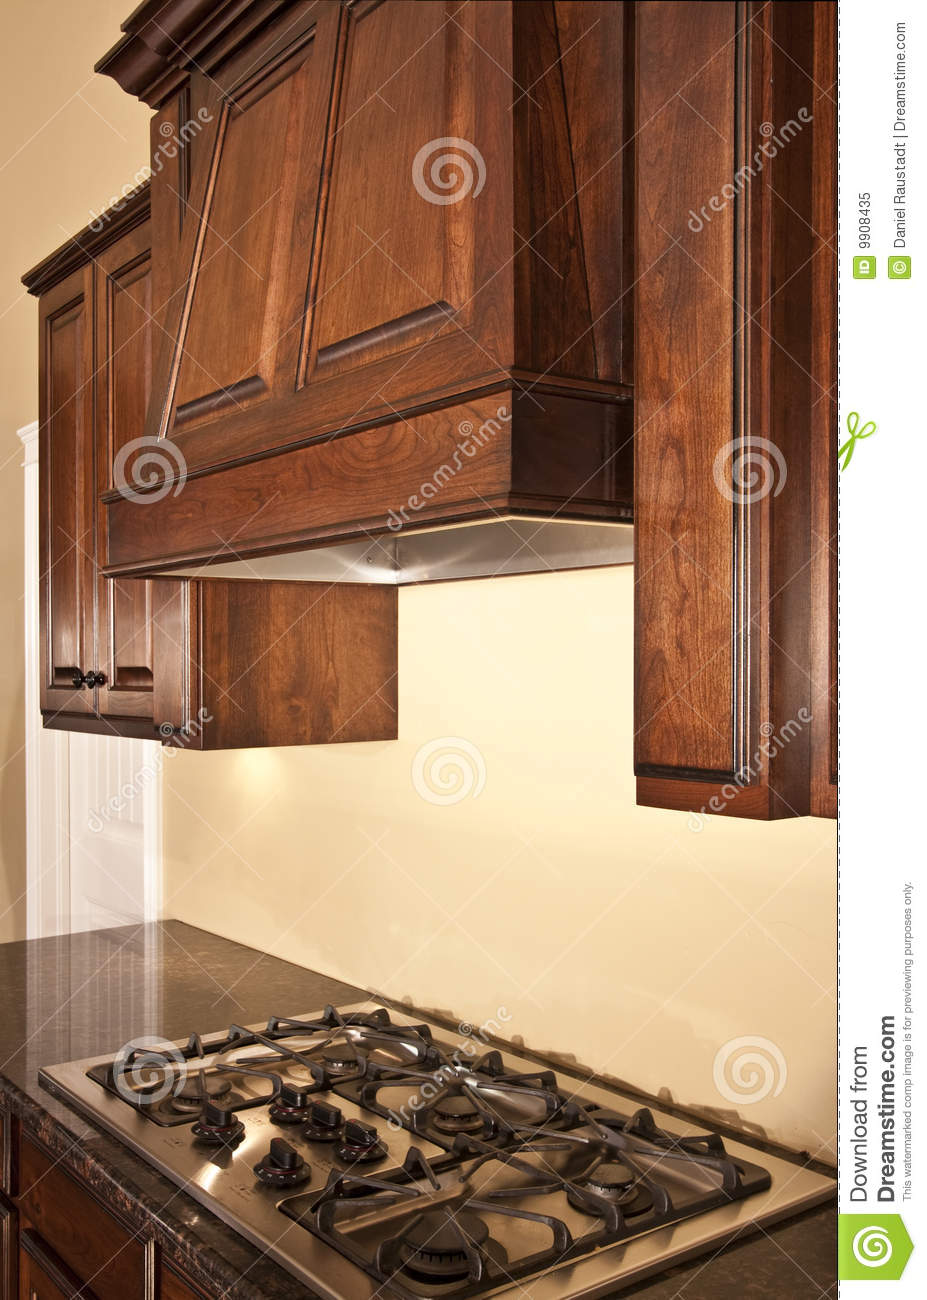 Download lovely custom kitchen cabinets and range hood by daniel